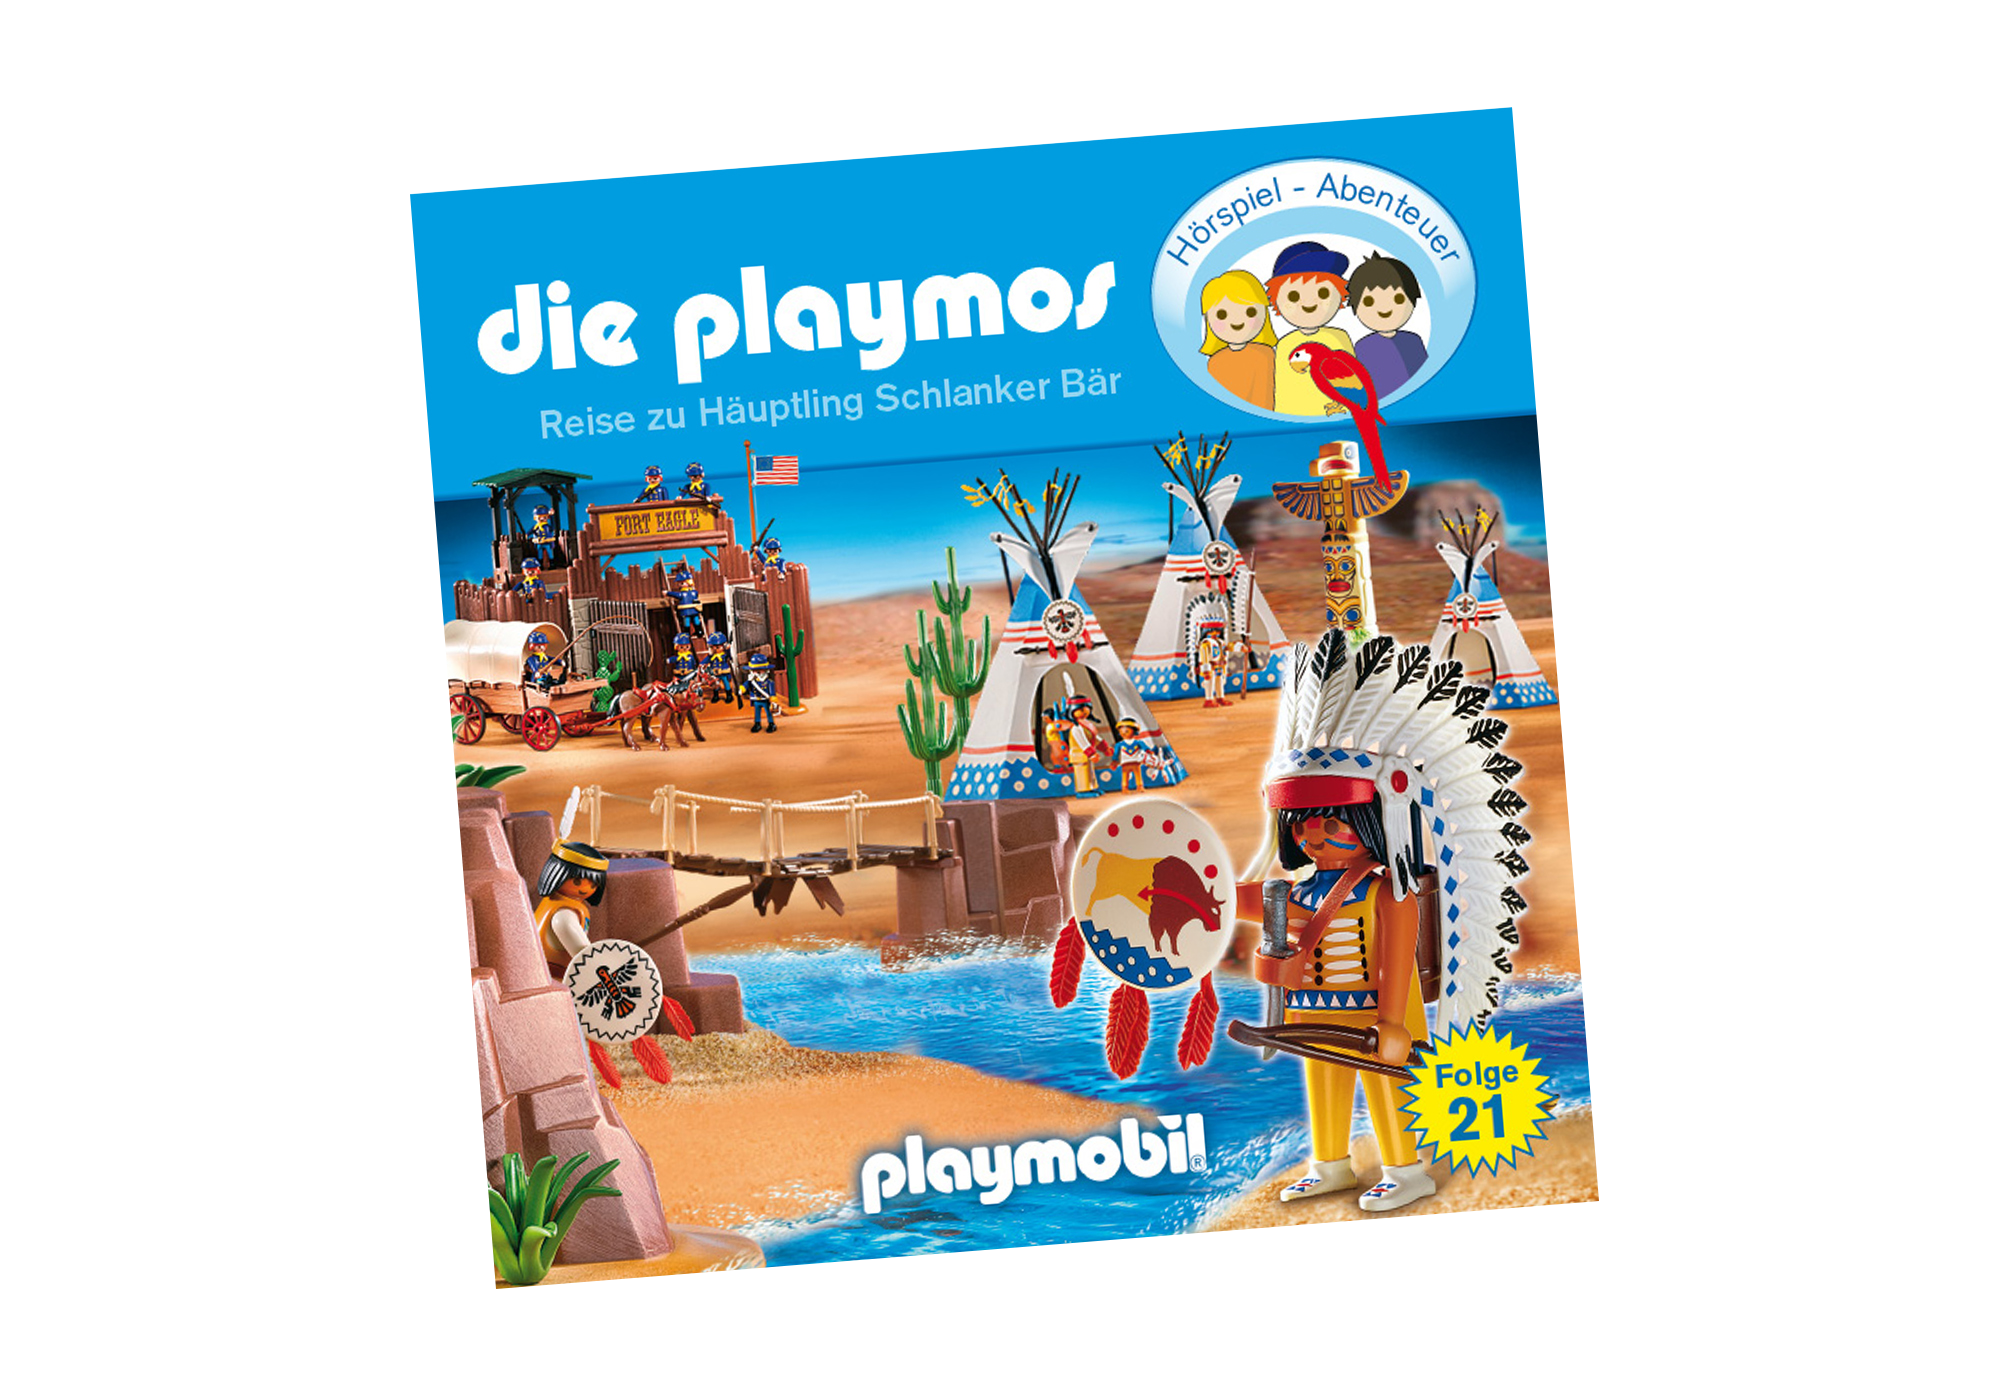 http://media.playmobil.com/i/playmobil/80322_product_detail